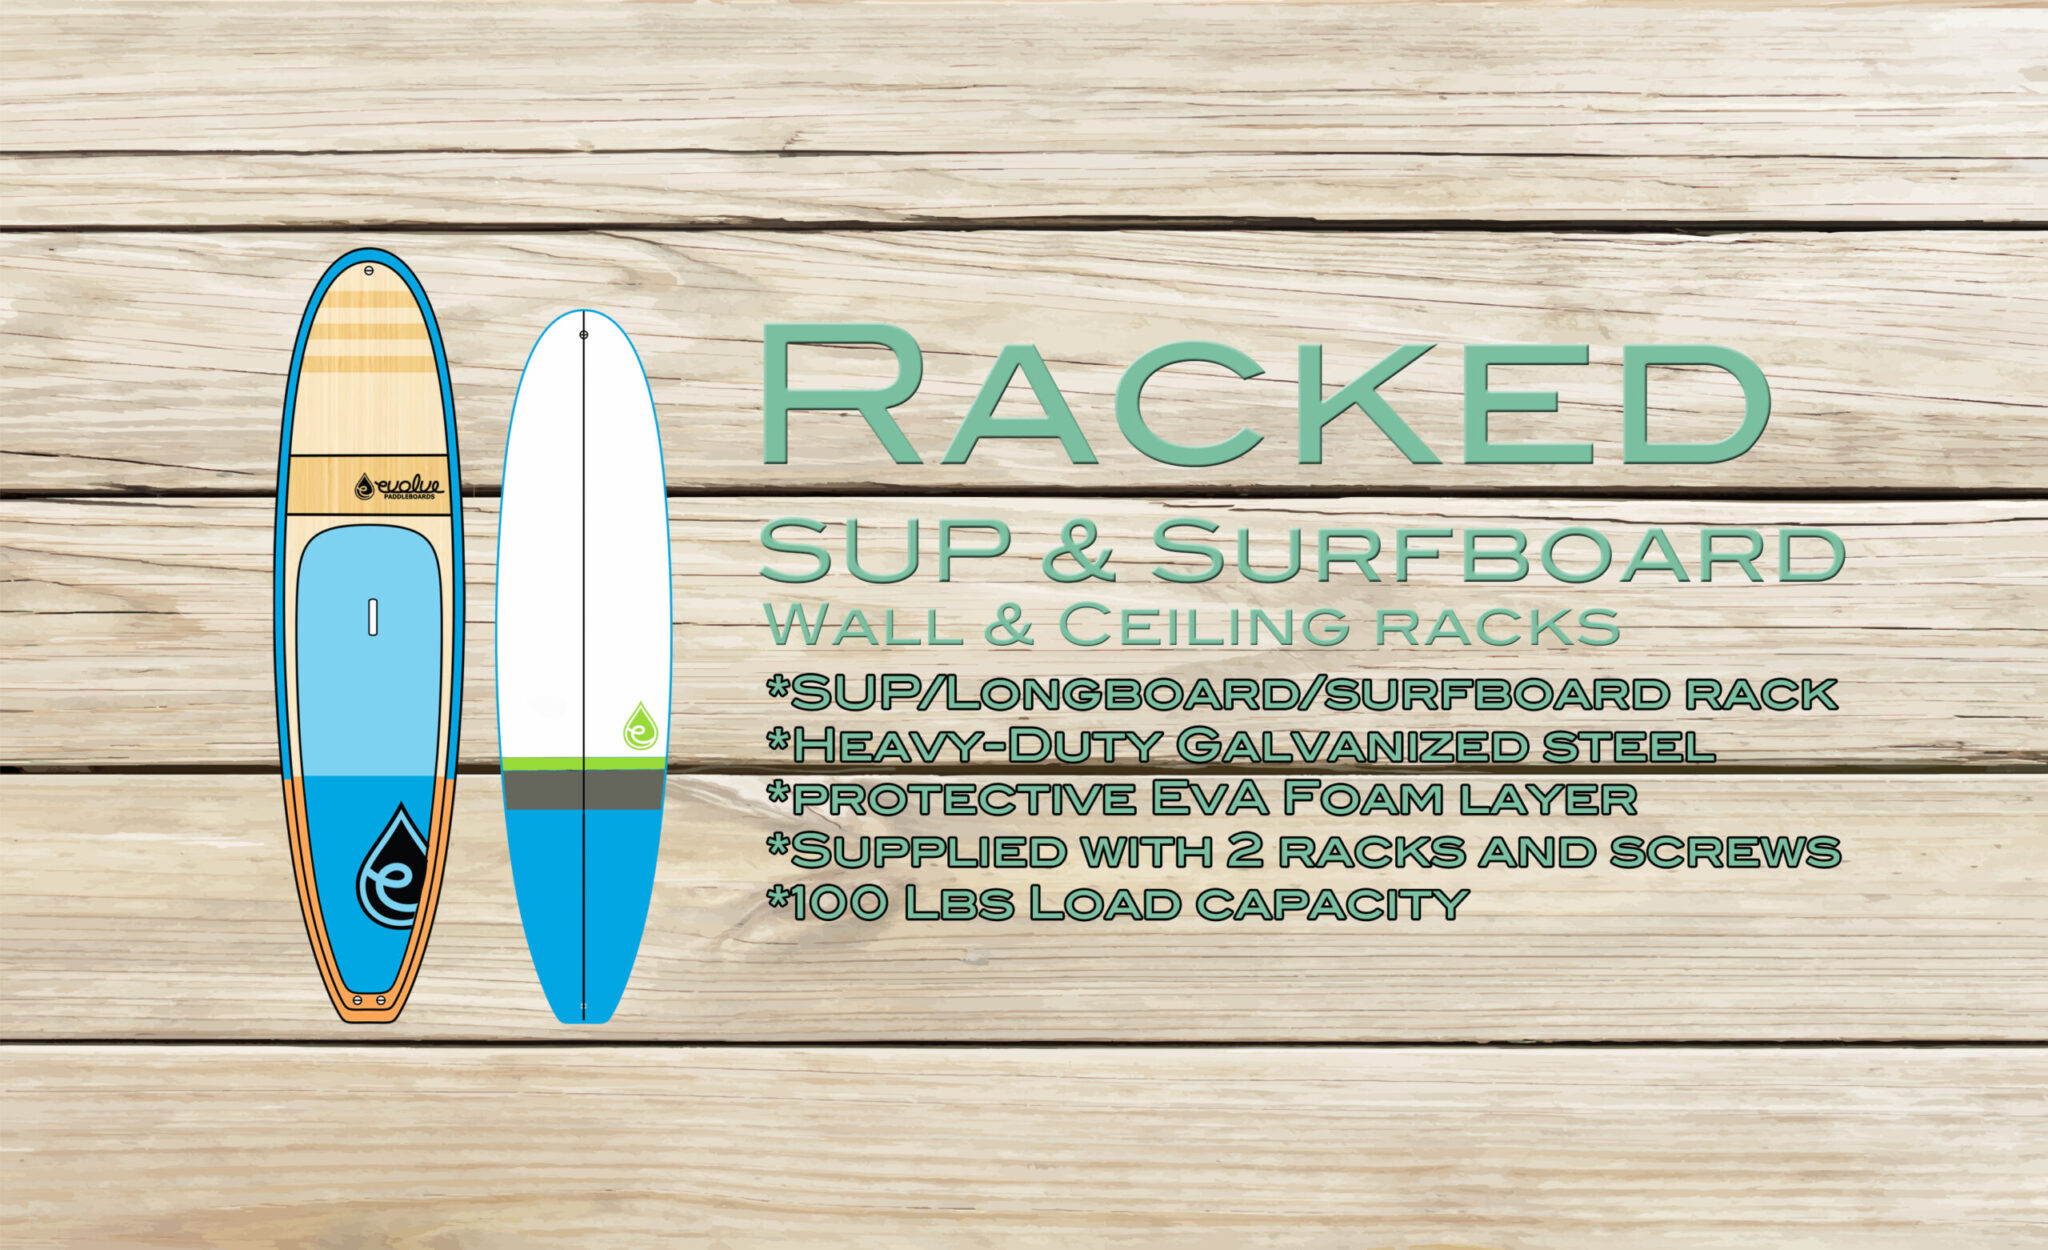 Racked SUP and Surfboard angled and ceiling wall mounts